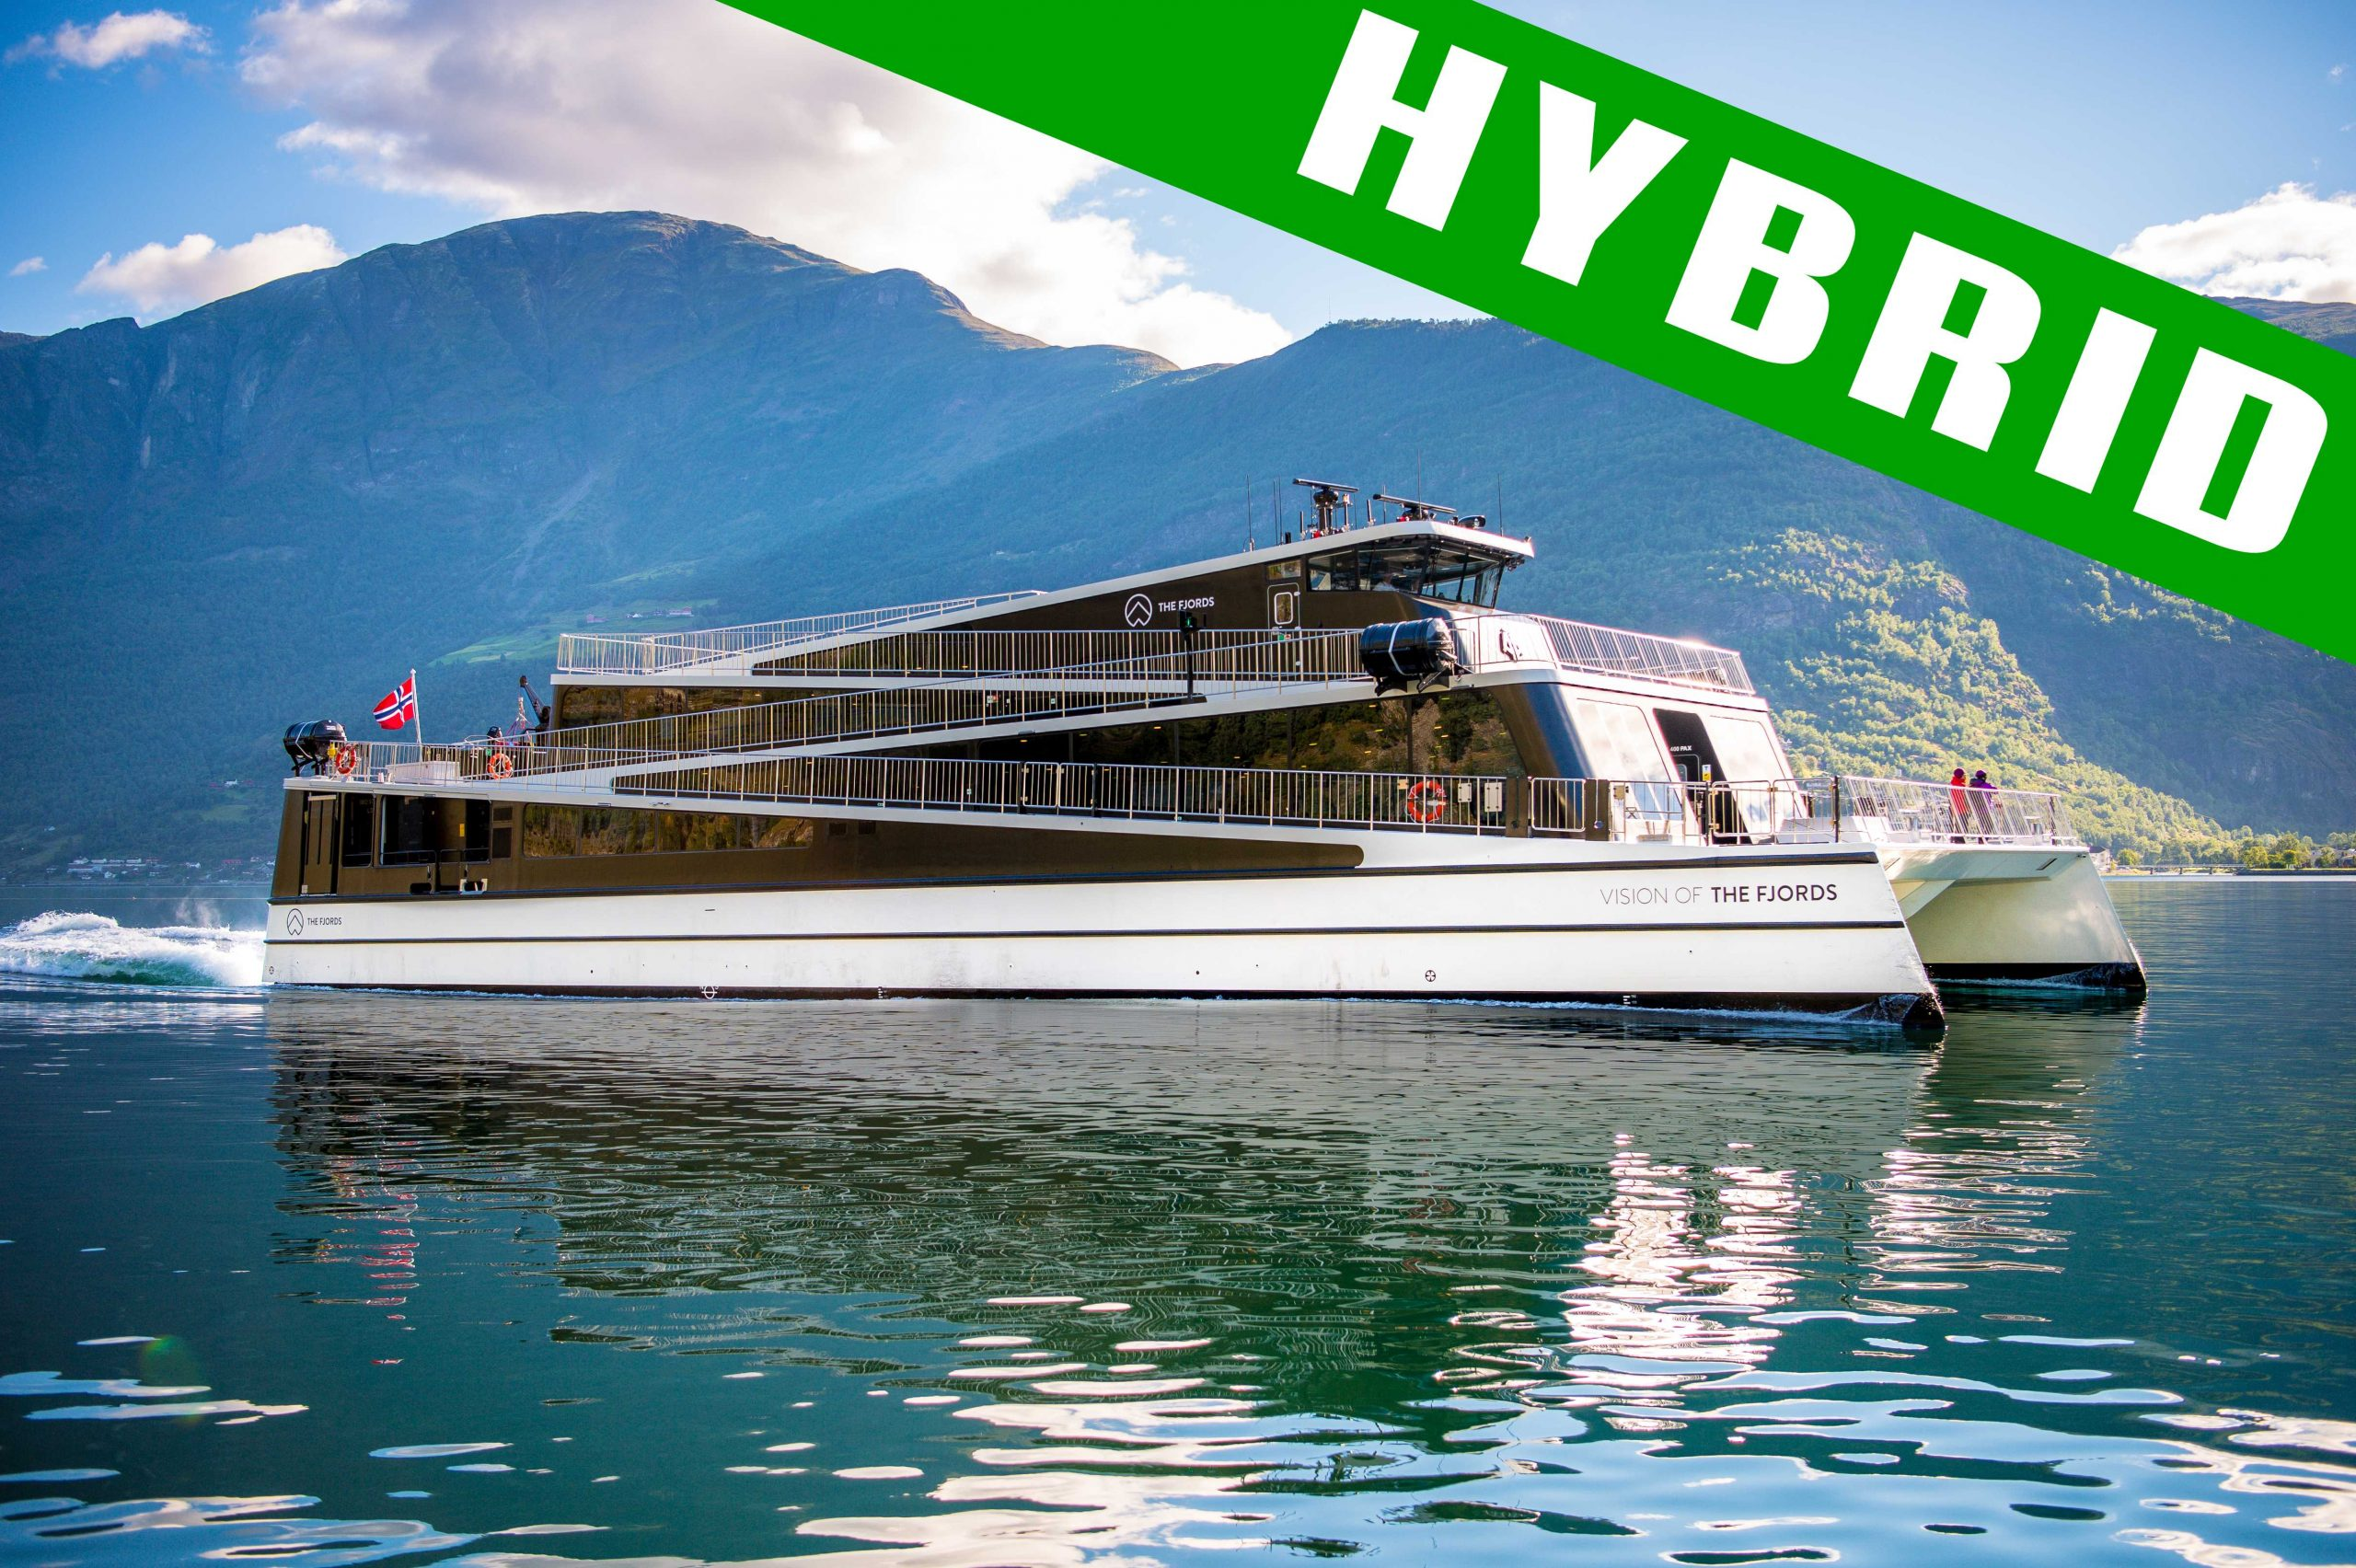 Vision of the Fjords- 400 pax